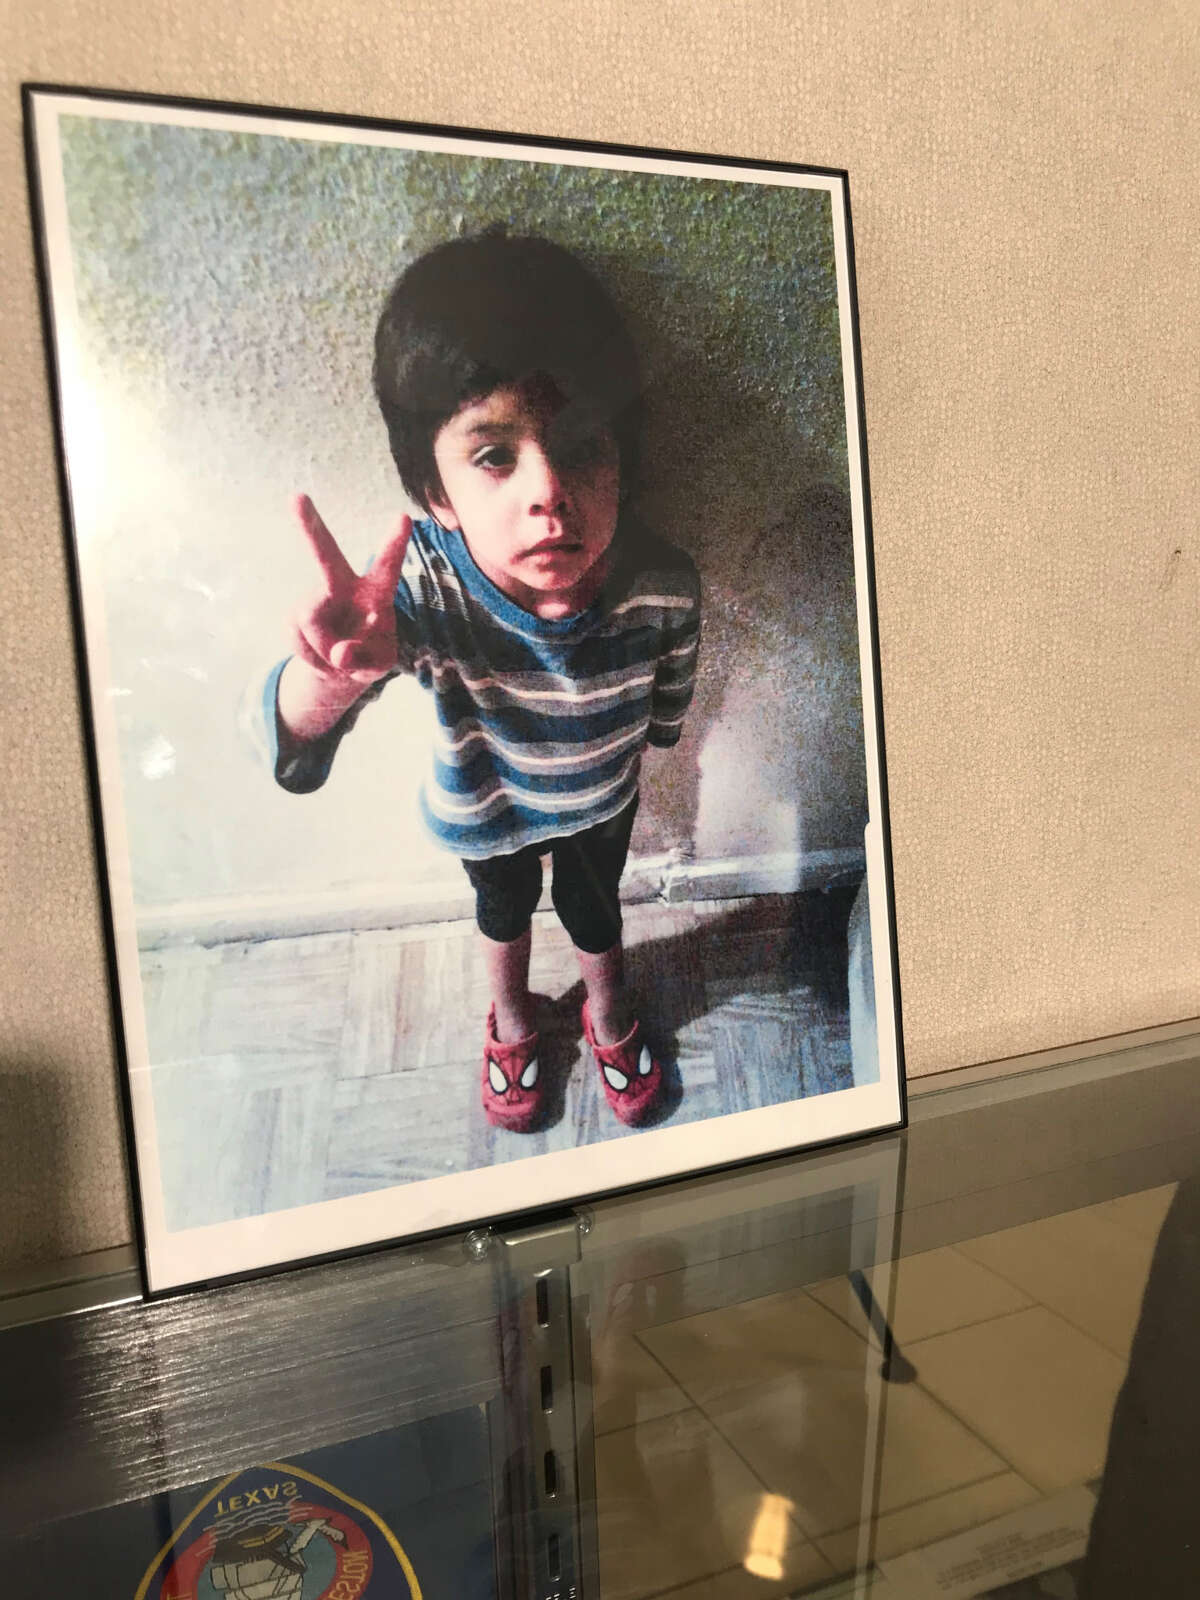 A photo of Jayden Alexander Lopez, whose body was found washed up on a Galveston beach last year.